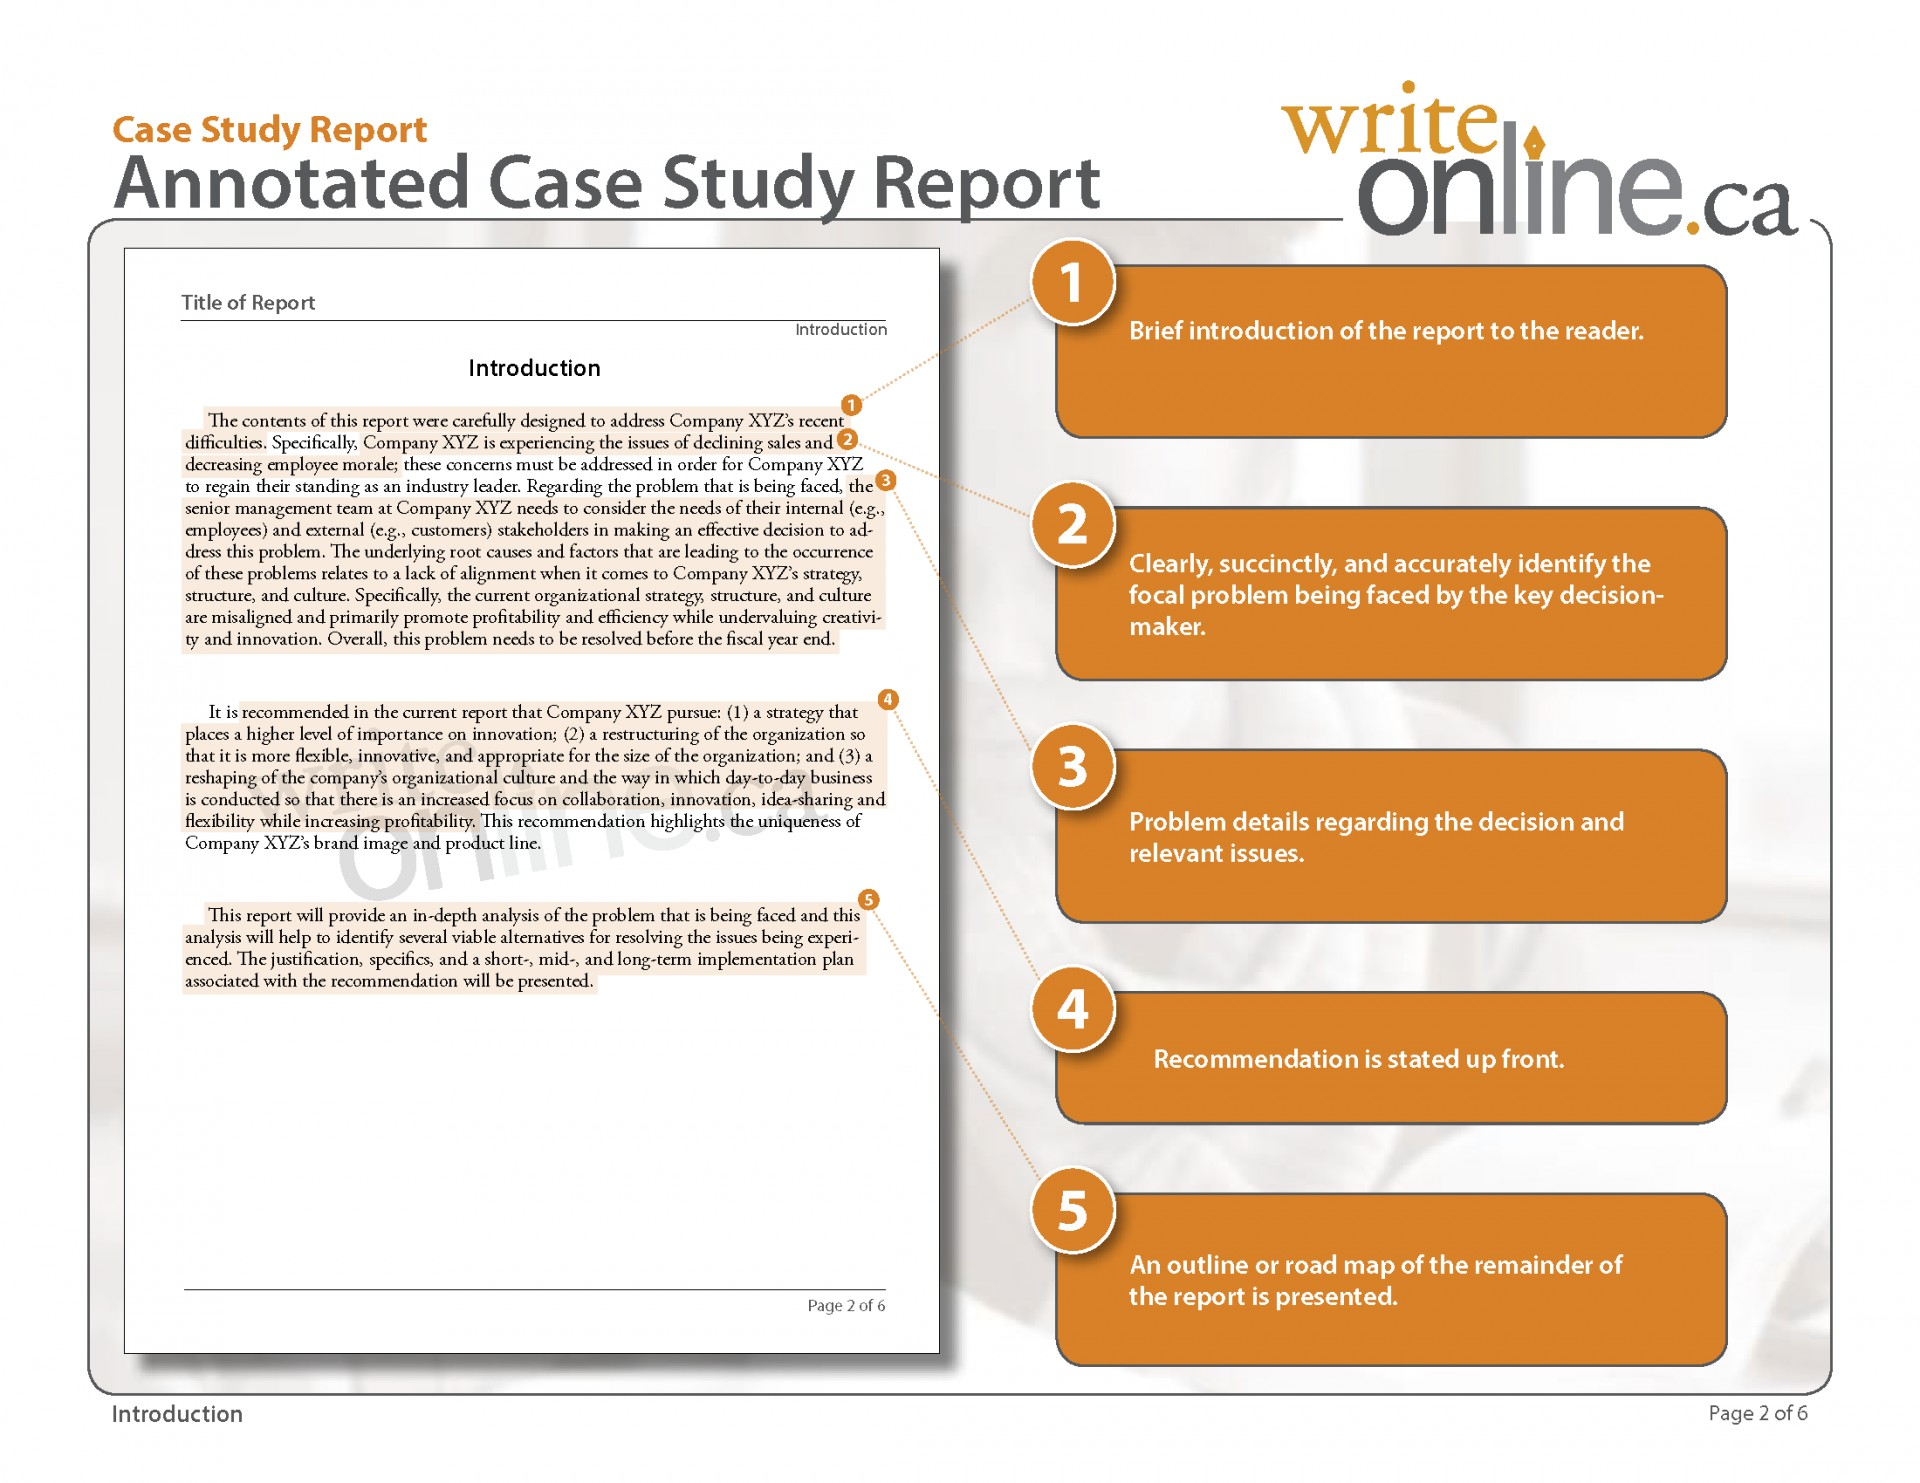 009 Research Paper Casestudy Annotatedfull Page 2 Component Of Archaicawful Pdf Parts Chapter 1 Quantitative 1920